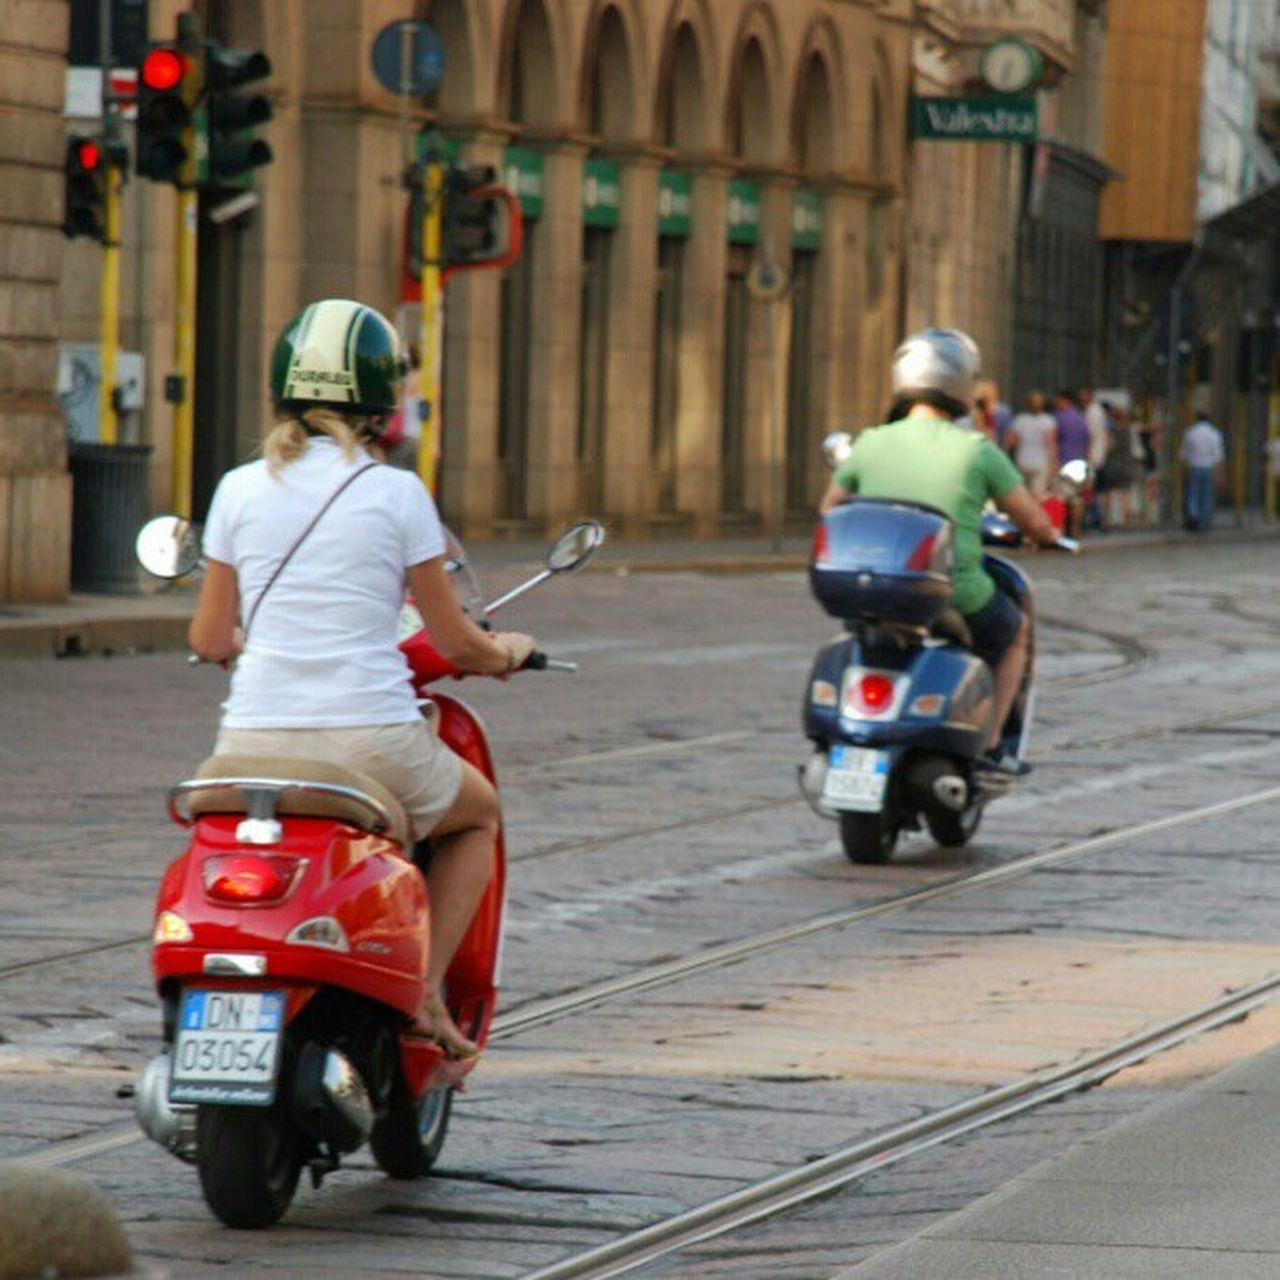 street, motorcycle, architecture, helmet, transportation, sitting, built structure, building exterior, city street, city, mode of transport, travel, crash helmet, outdoors, full length, city life, headwear, land vehicle, day, adult, travel destinations, people, two people, men, adults only, only men, young adult